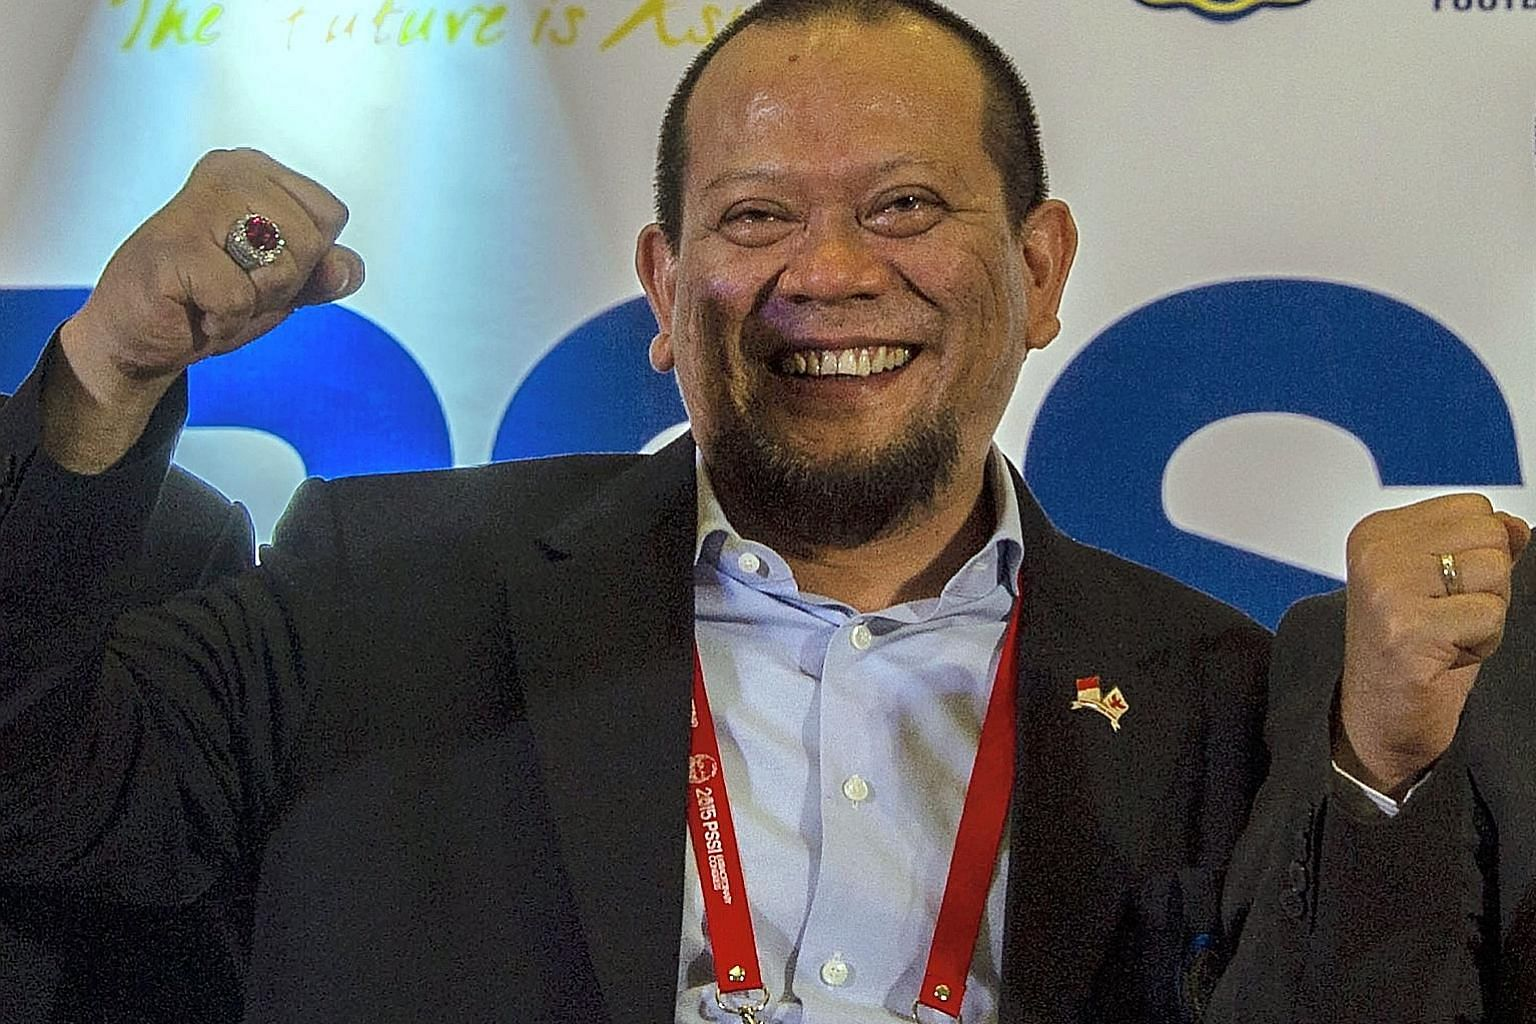 Mr La Nyalla after he was elected chief of the Indonesian Football Association last year. He was named as a suspect in a graft probe by the country's Corruption Eradication Commission on March 16 this year.